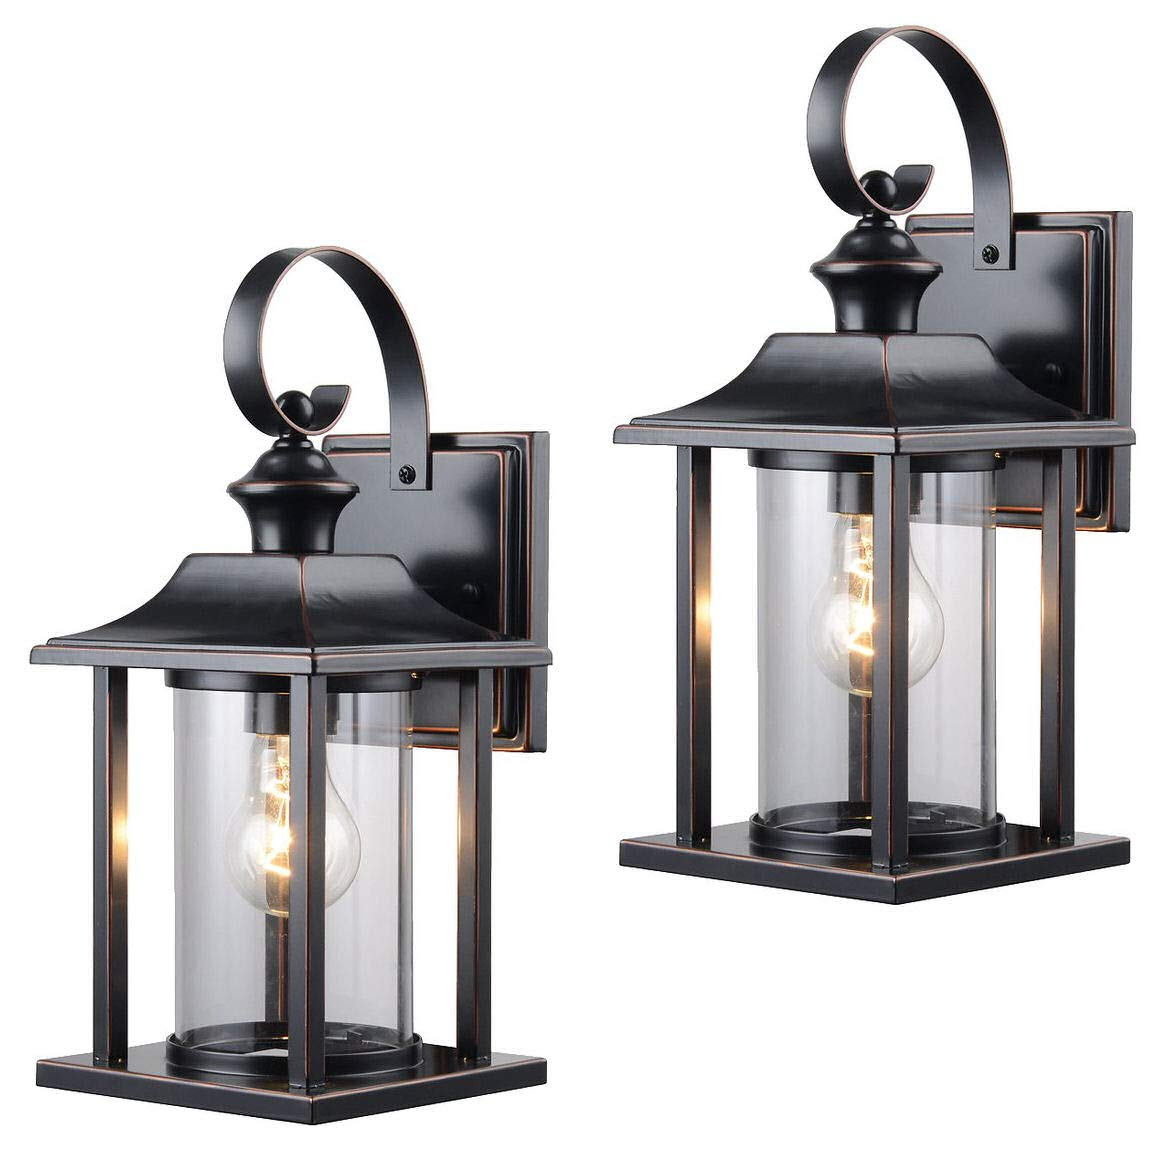 Hardware House 230582 13-1/4-by-6-Inch Aluminum Outdoor Light Fixtures, Oil Rubbed Bronze - Twin Pack